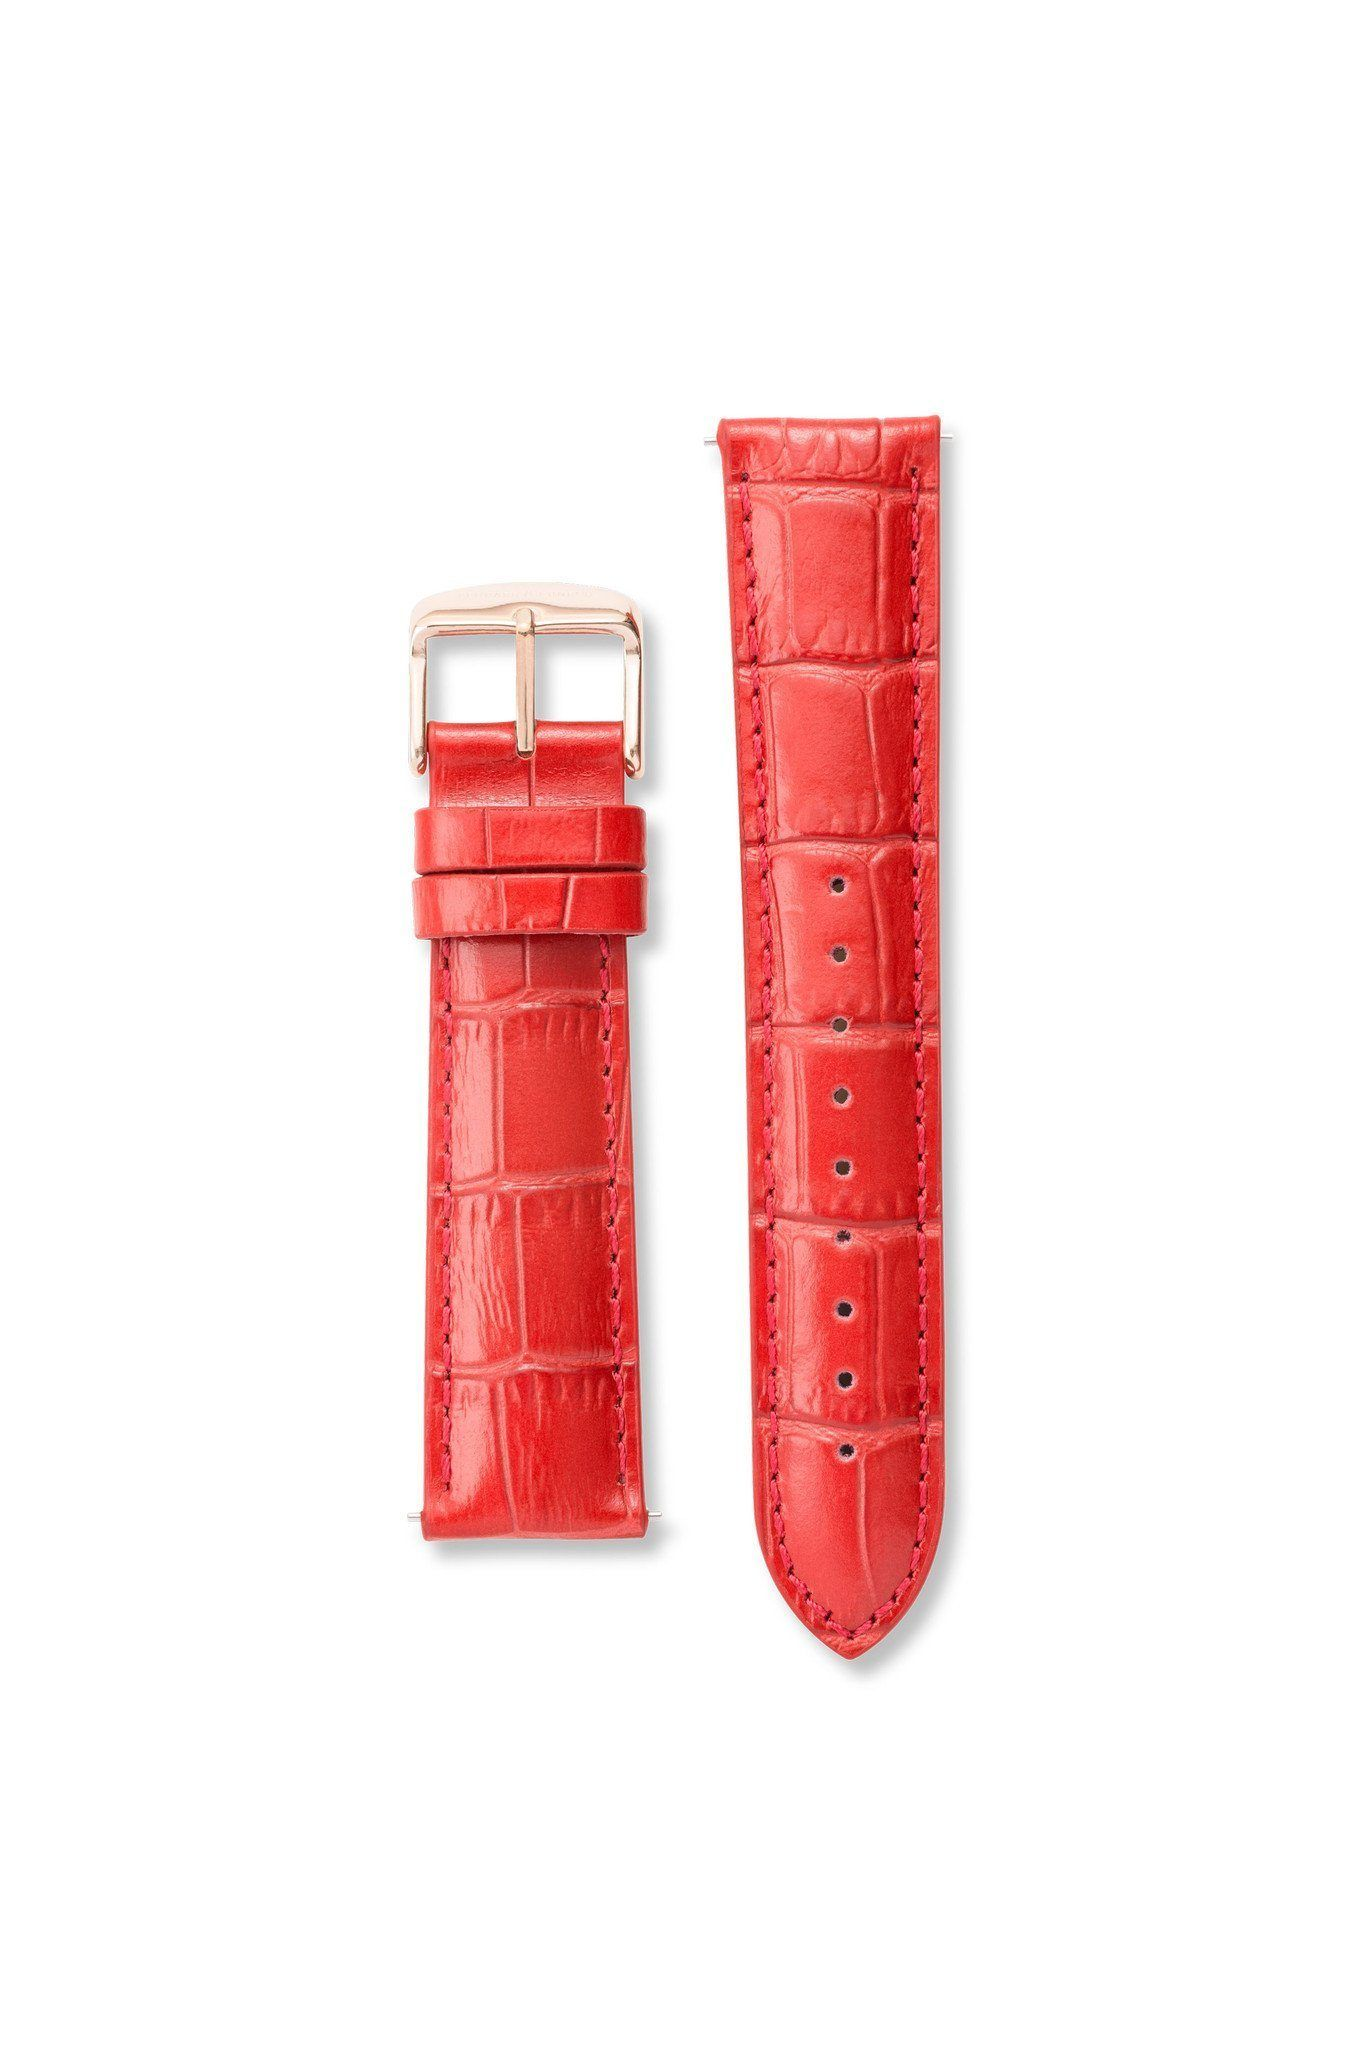 Strap - Crocodile Pattern Leather Red / Rose Gold Strap